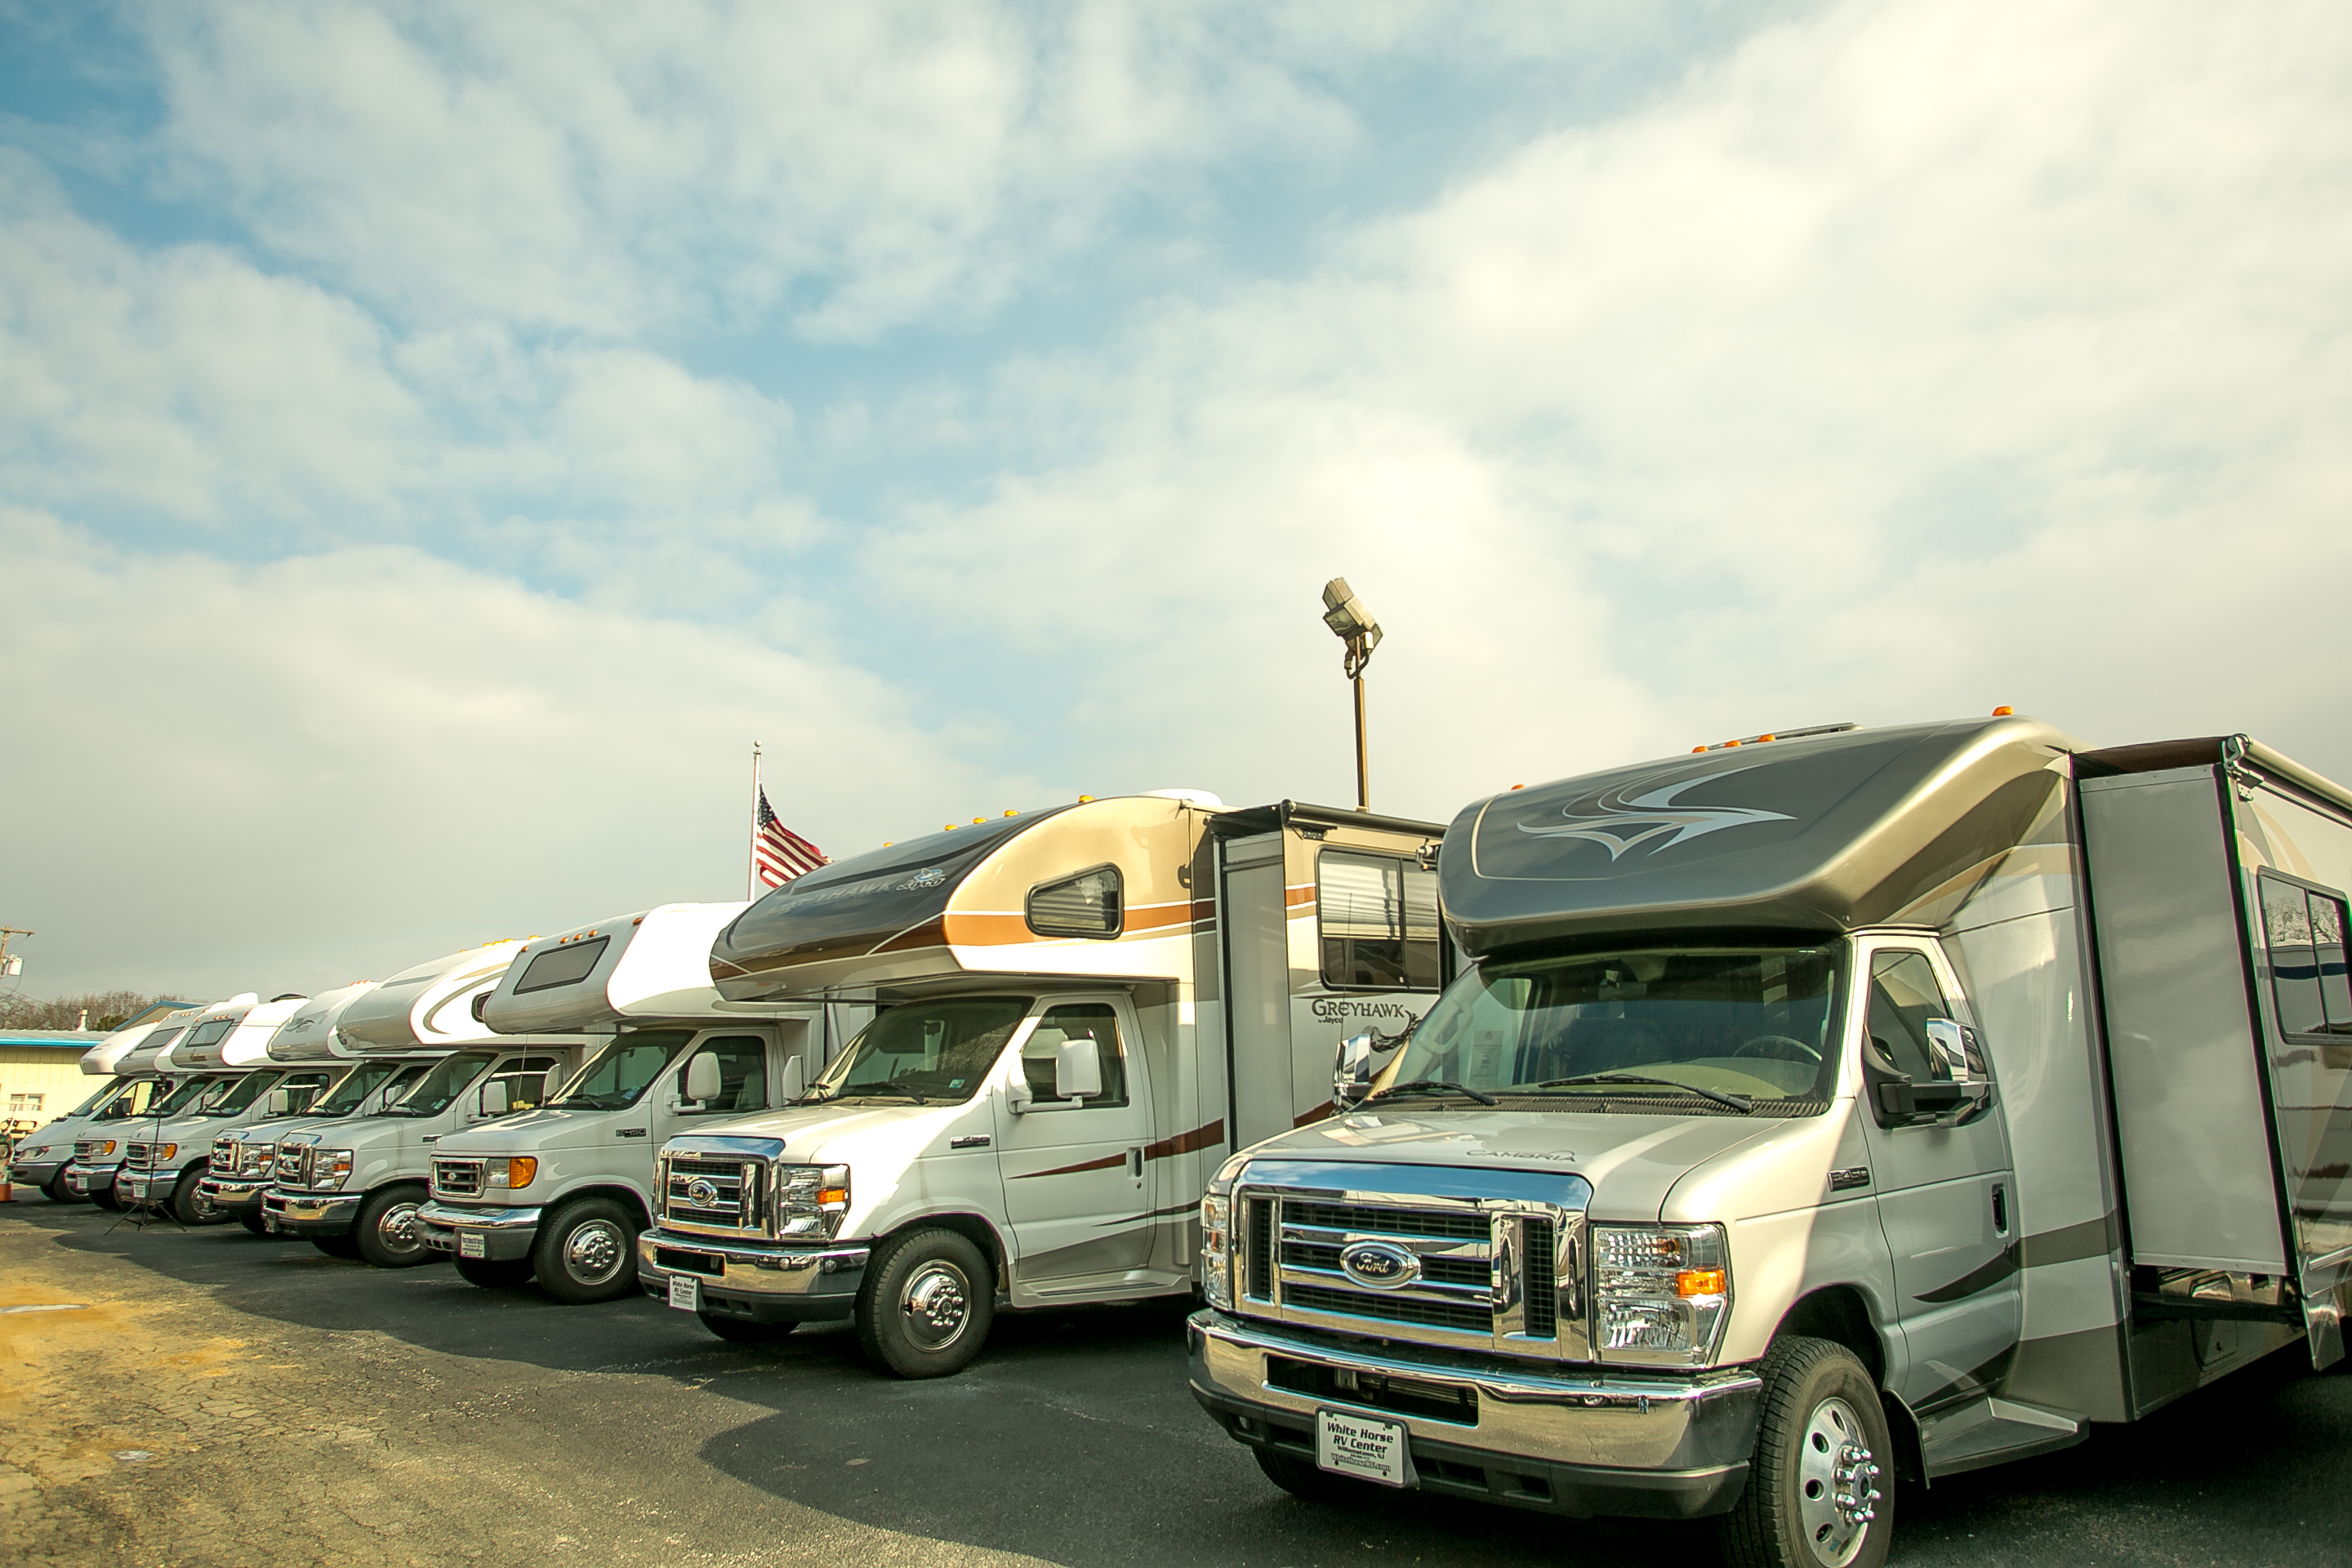 White Horse Rv Center Williamstown New Jersey Nj